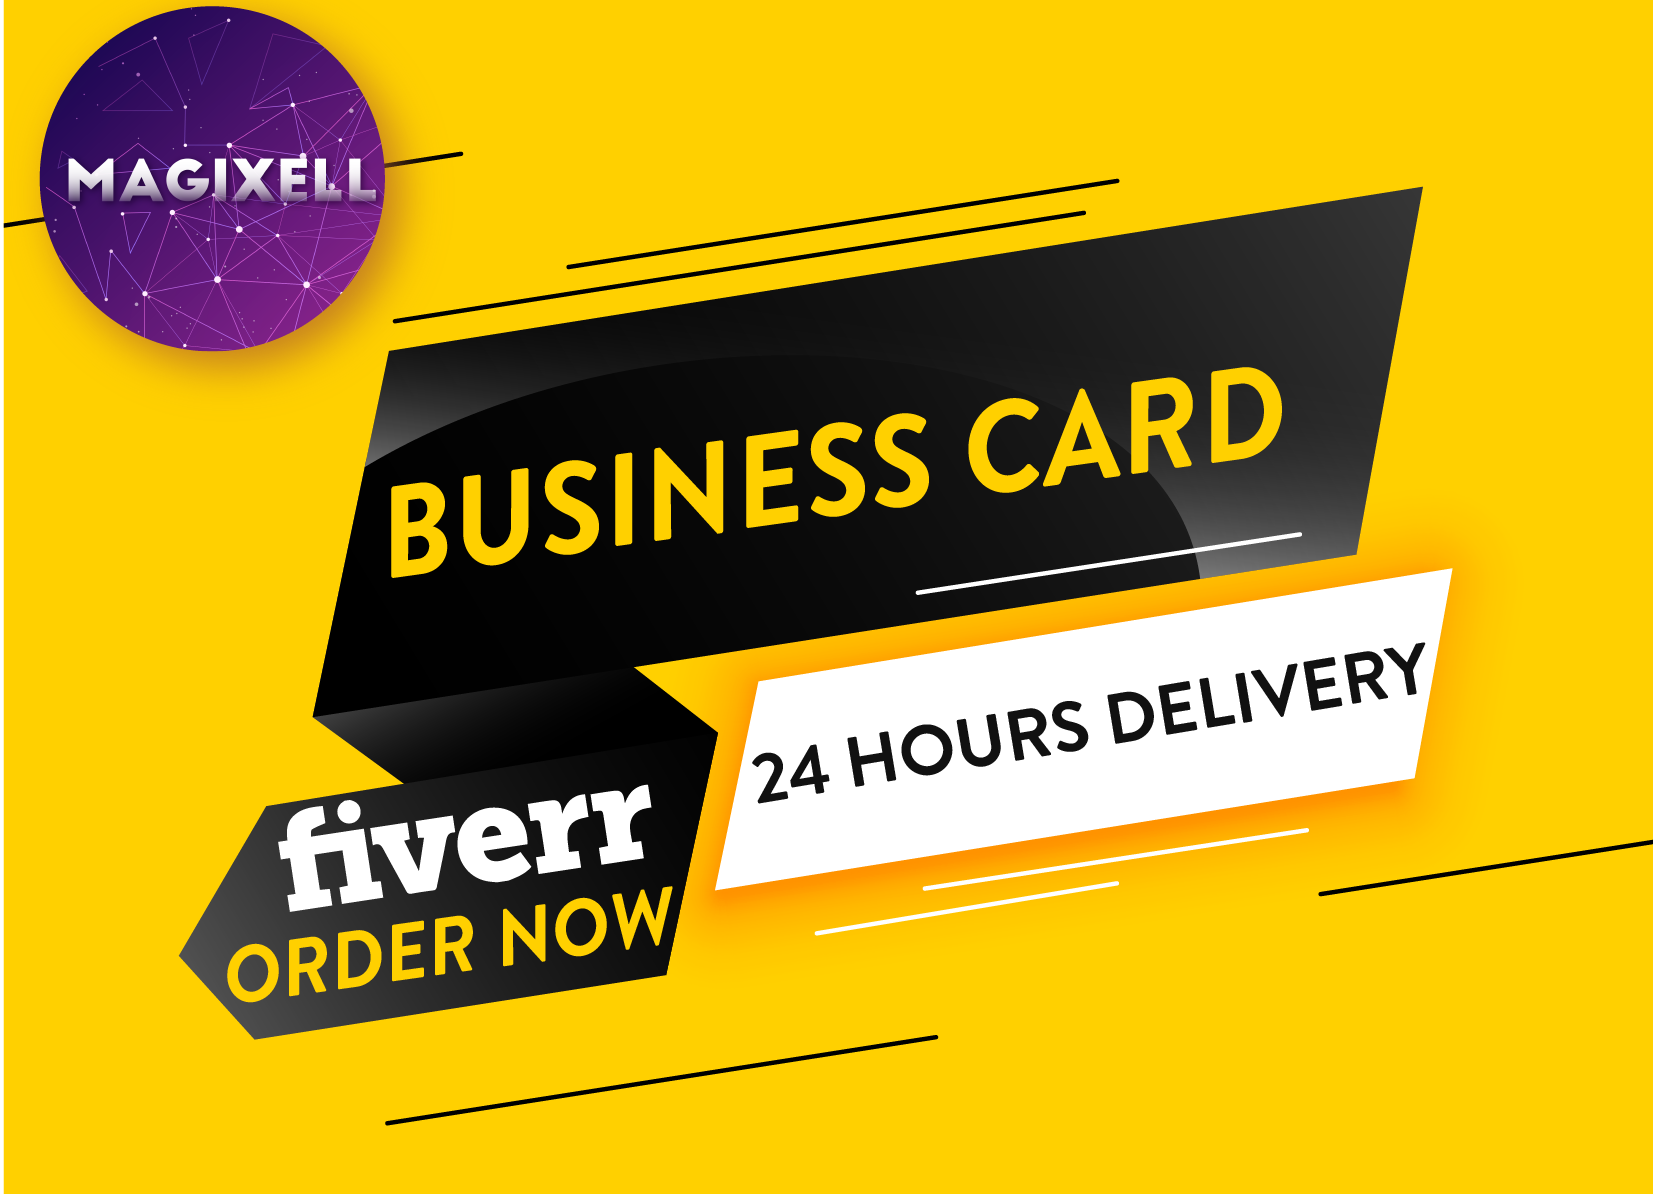 Magixell I Will Create Pro Business Card With Unlimited Revisions Within 24h For 10 On Fiverr Com Business Cards Professional Business Cards Business